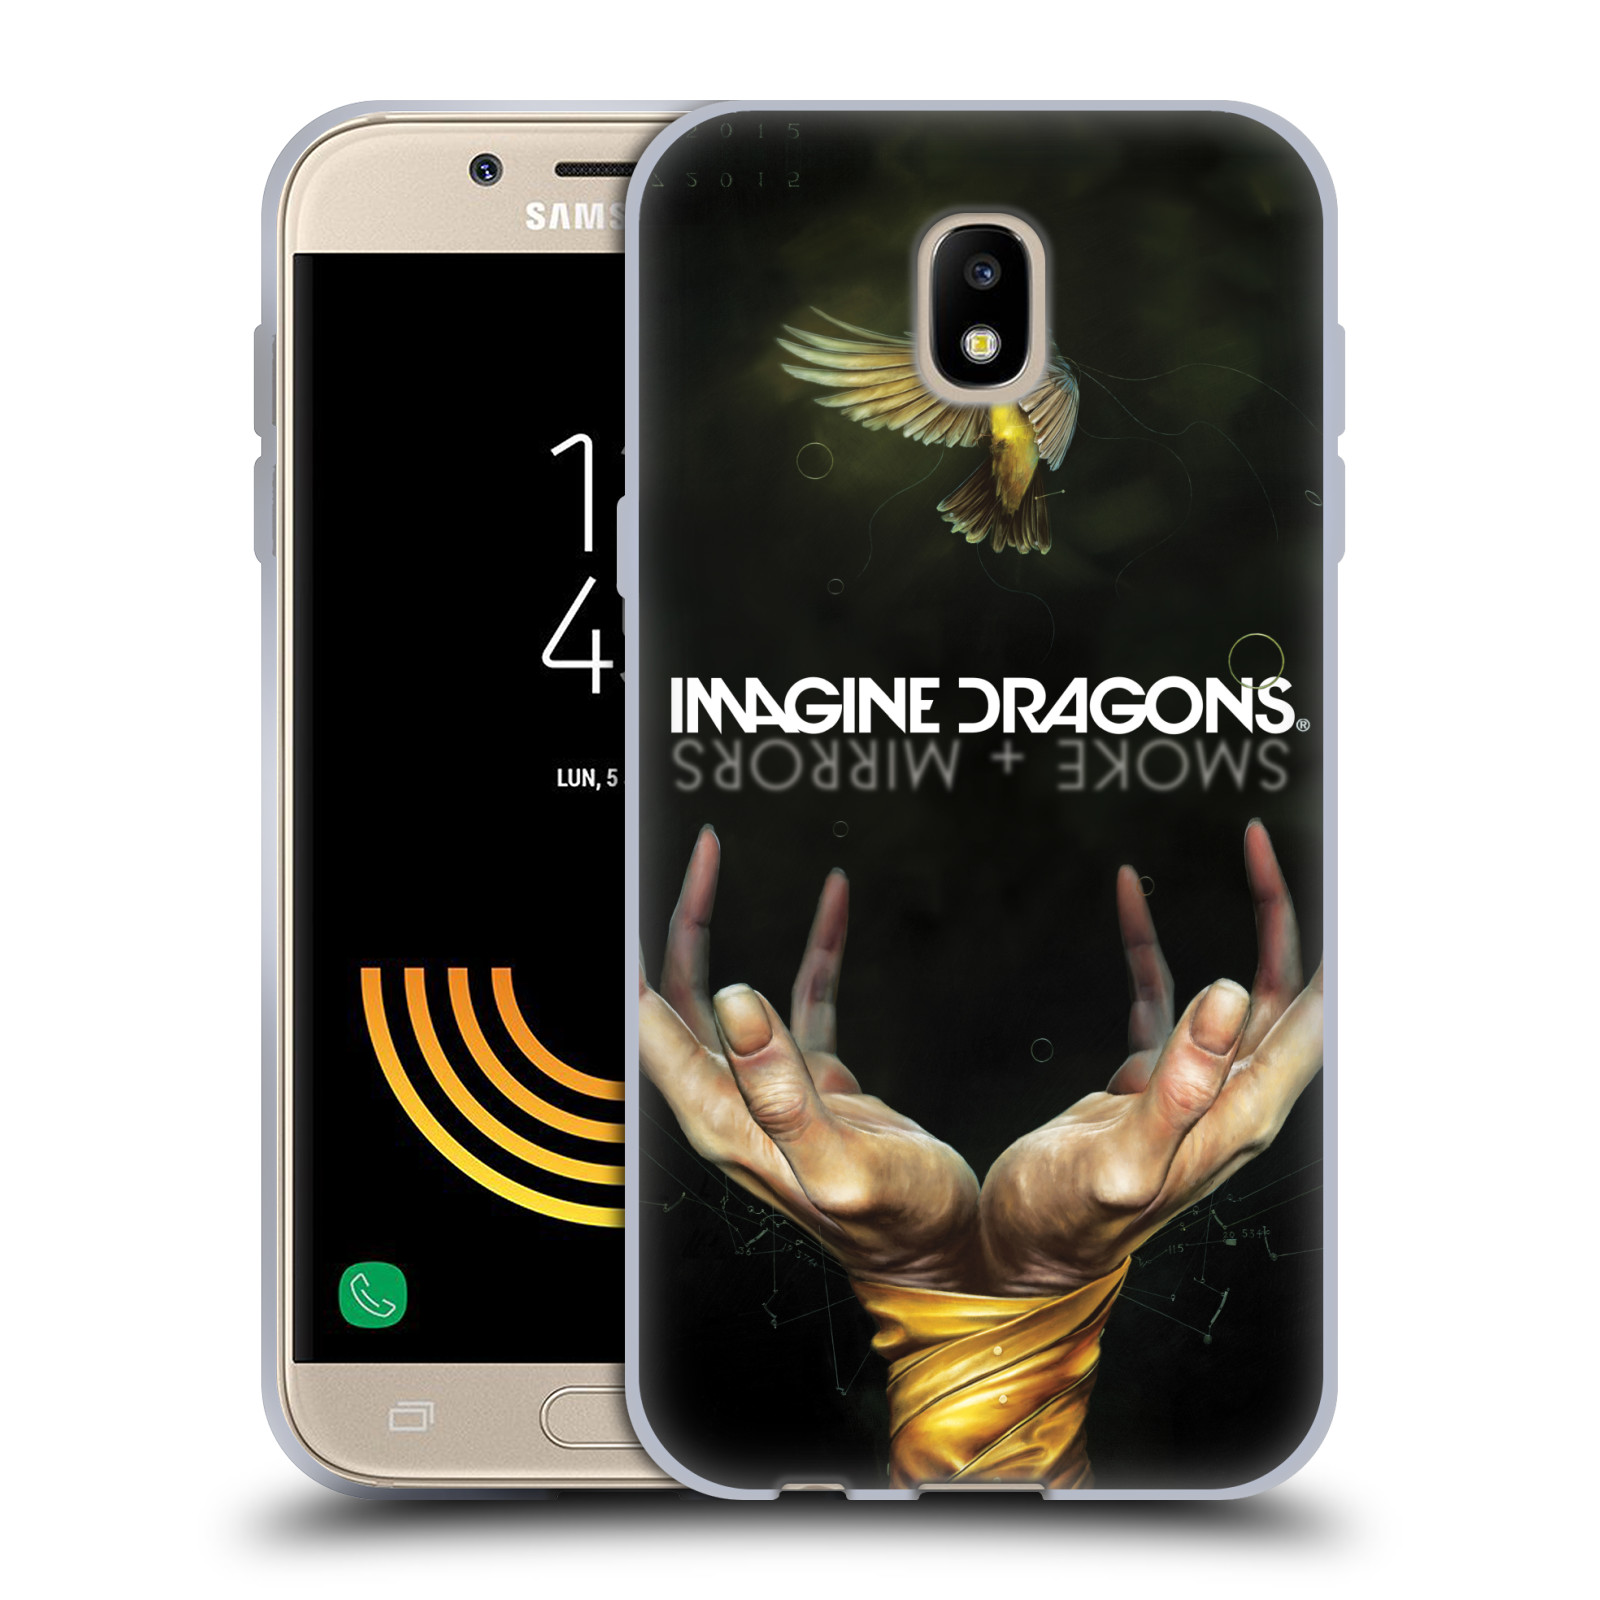 HEAD CASE silikonový obal na mobil Samsung Galaxy J5 2017 hudební skupina Imagine Dragons SMOKE and MIRRORS